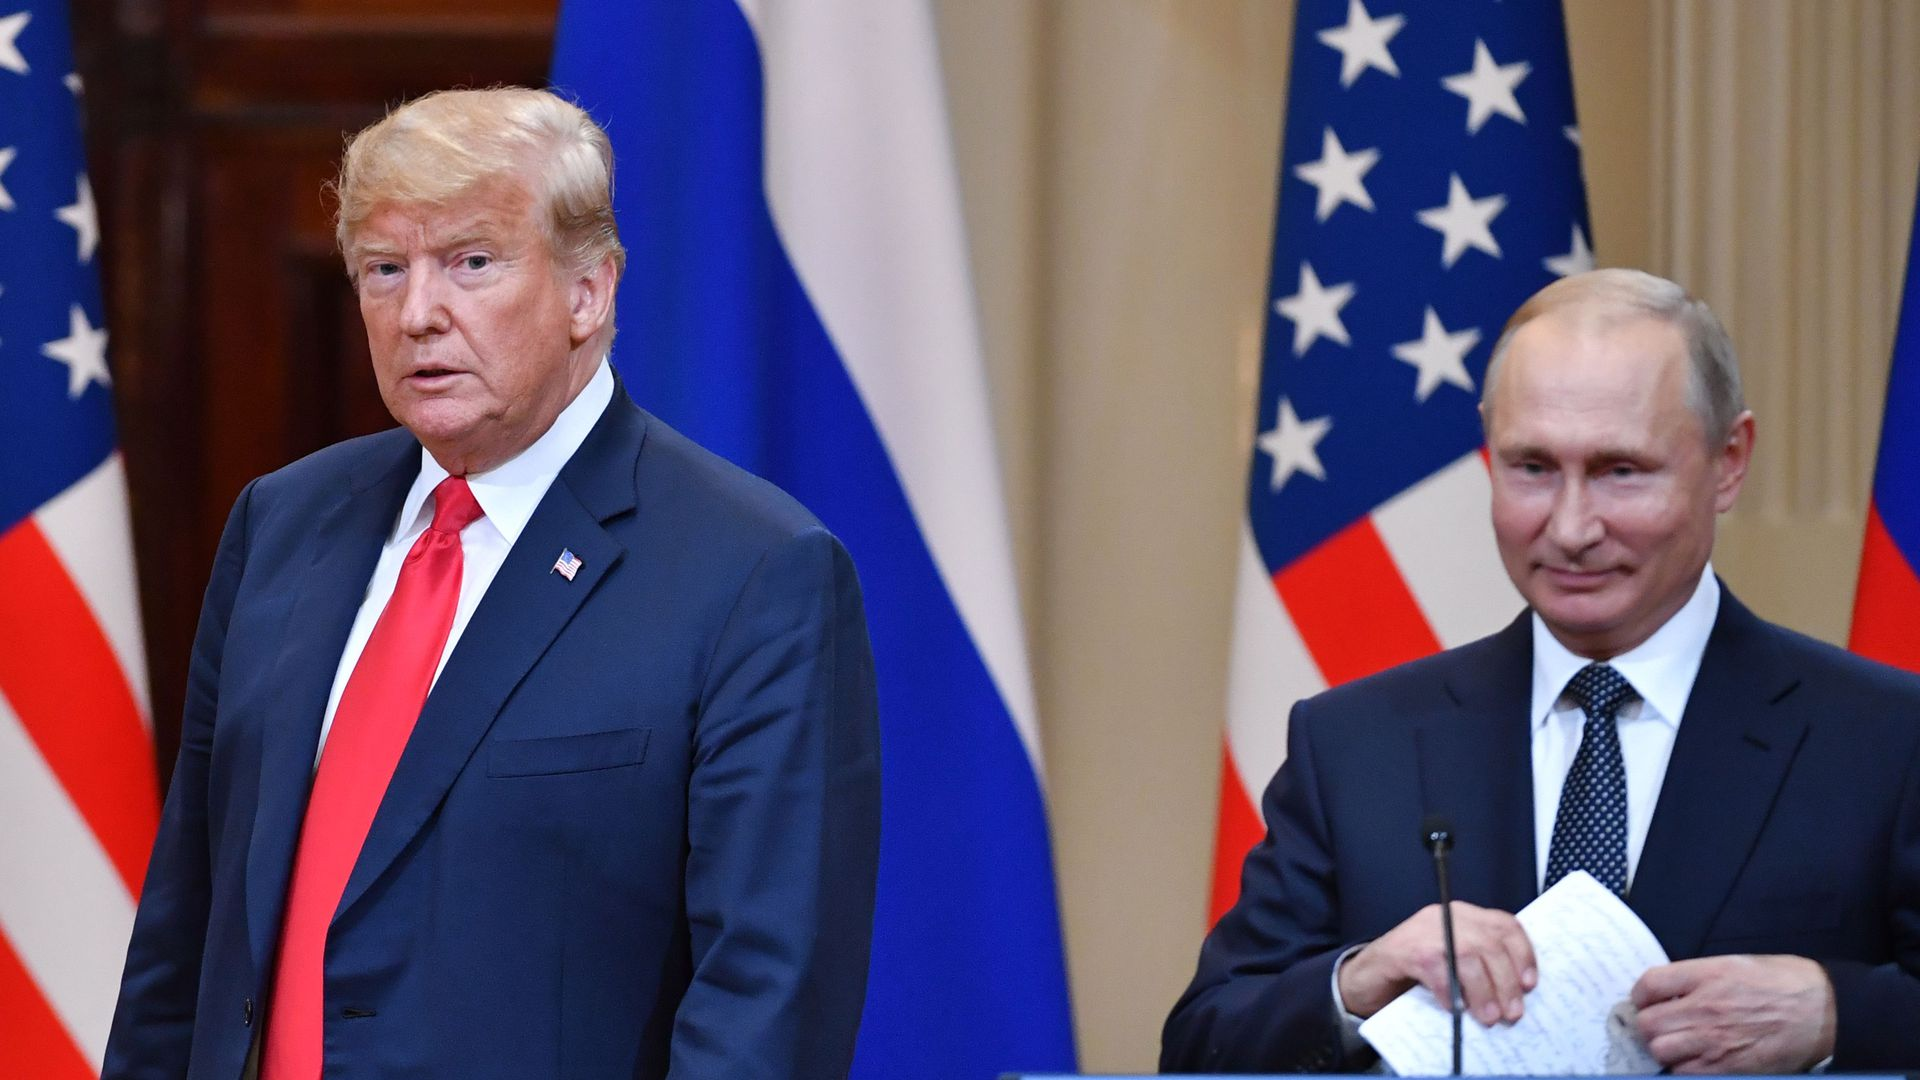 US President Donald Trump (L) and Russia's President Vladimir Putin arrive to attend a joint press conference after a meeting at the Presidential Palace in Helsinki, on July 16, 2018.